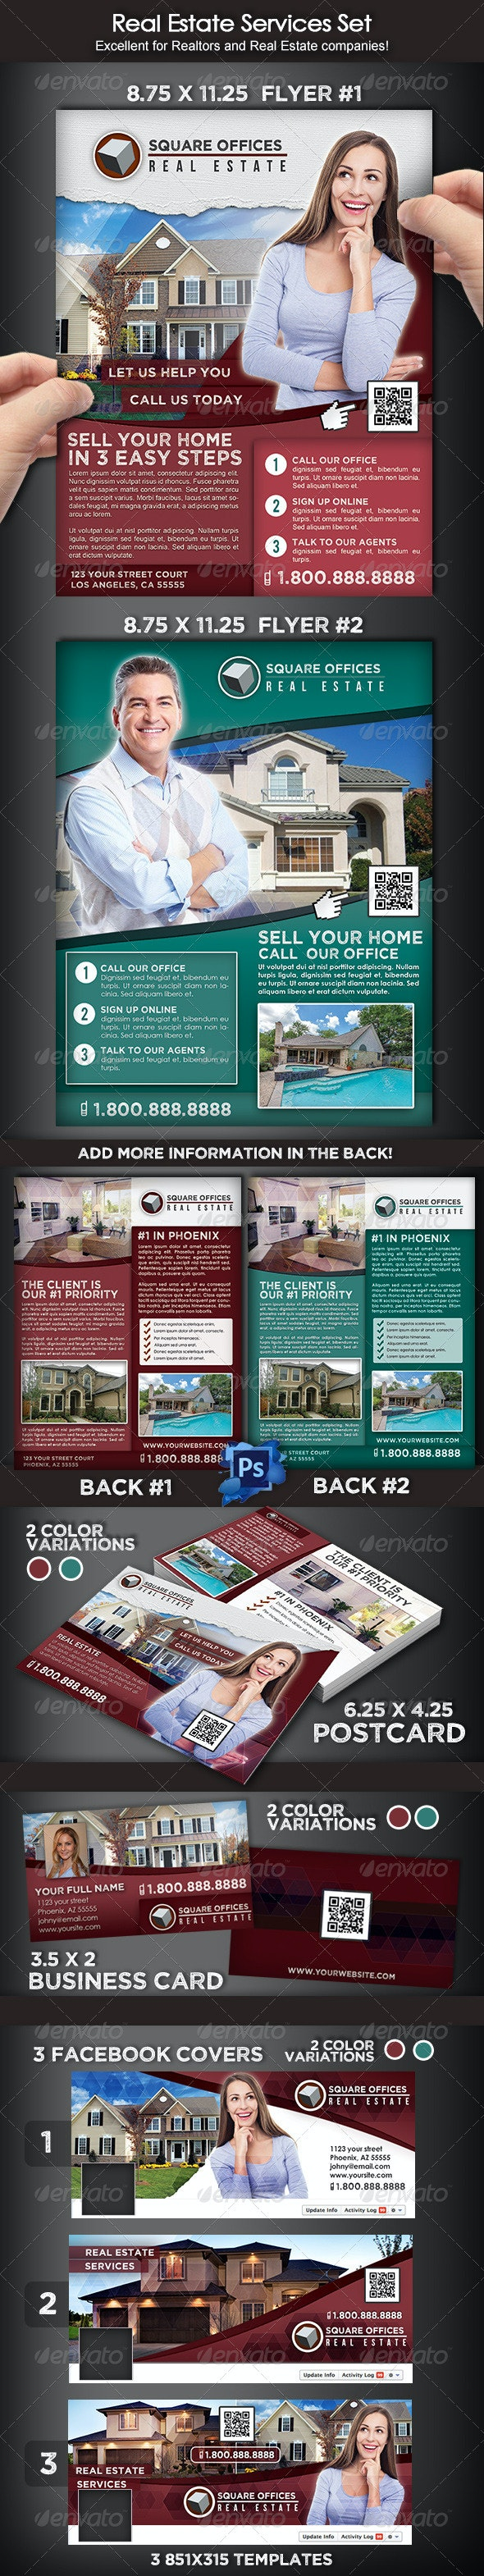 Real Estate Services Flyer Set - Corporate Flyers